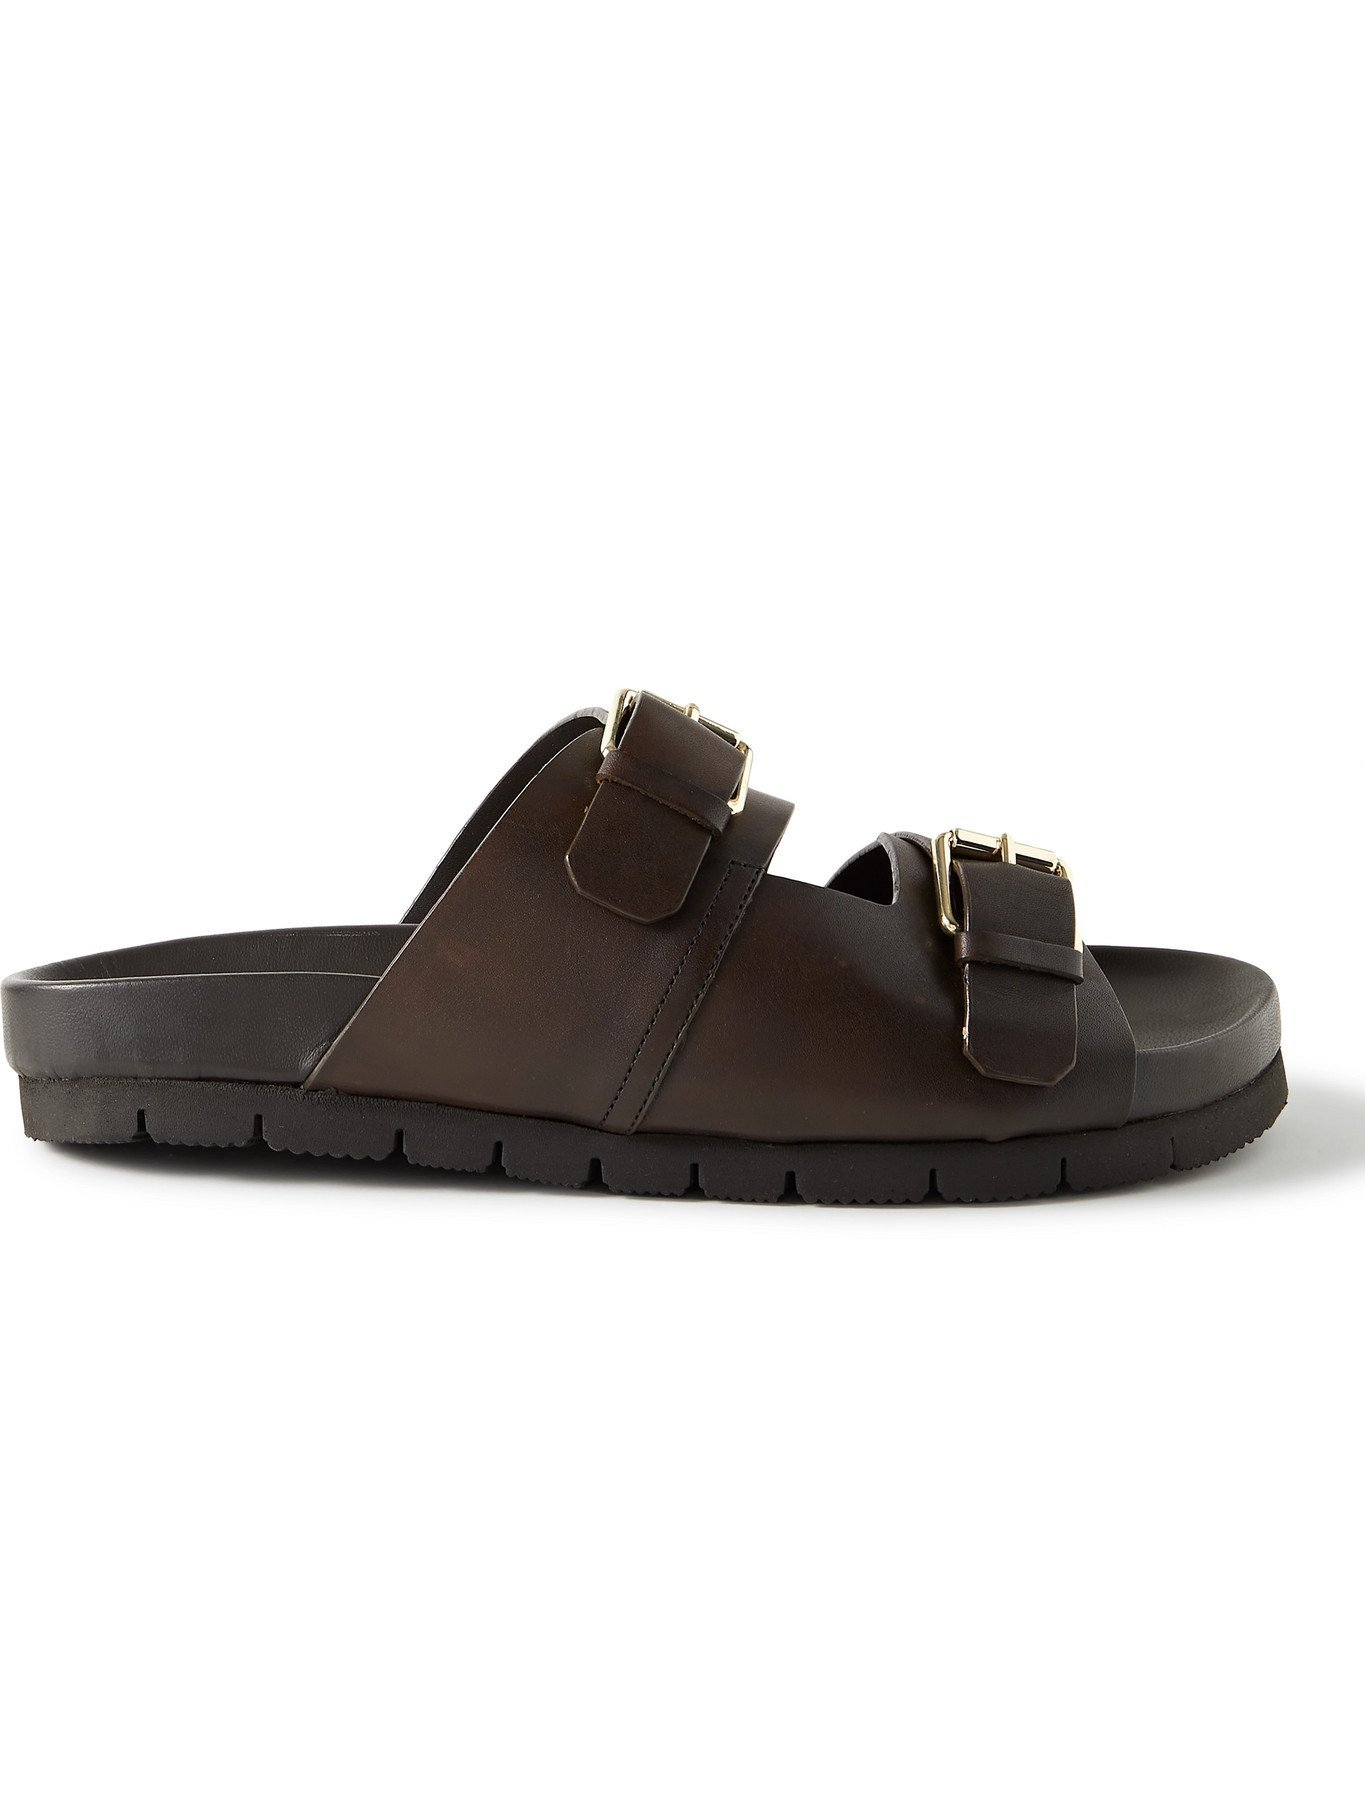 Photo: GRENSON - Florin Leather Slides - Brown - UK 5